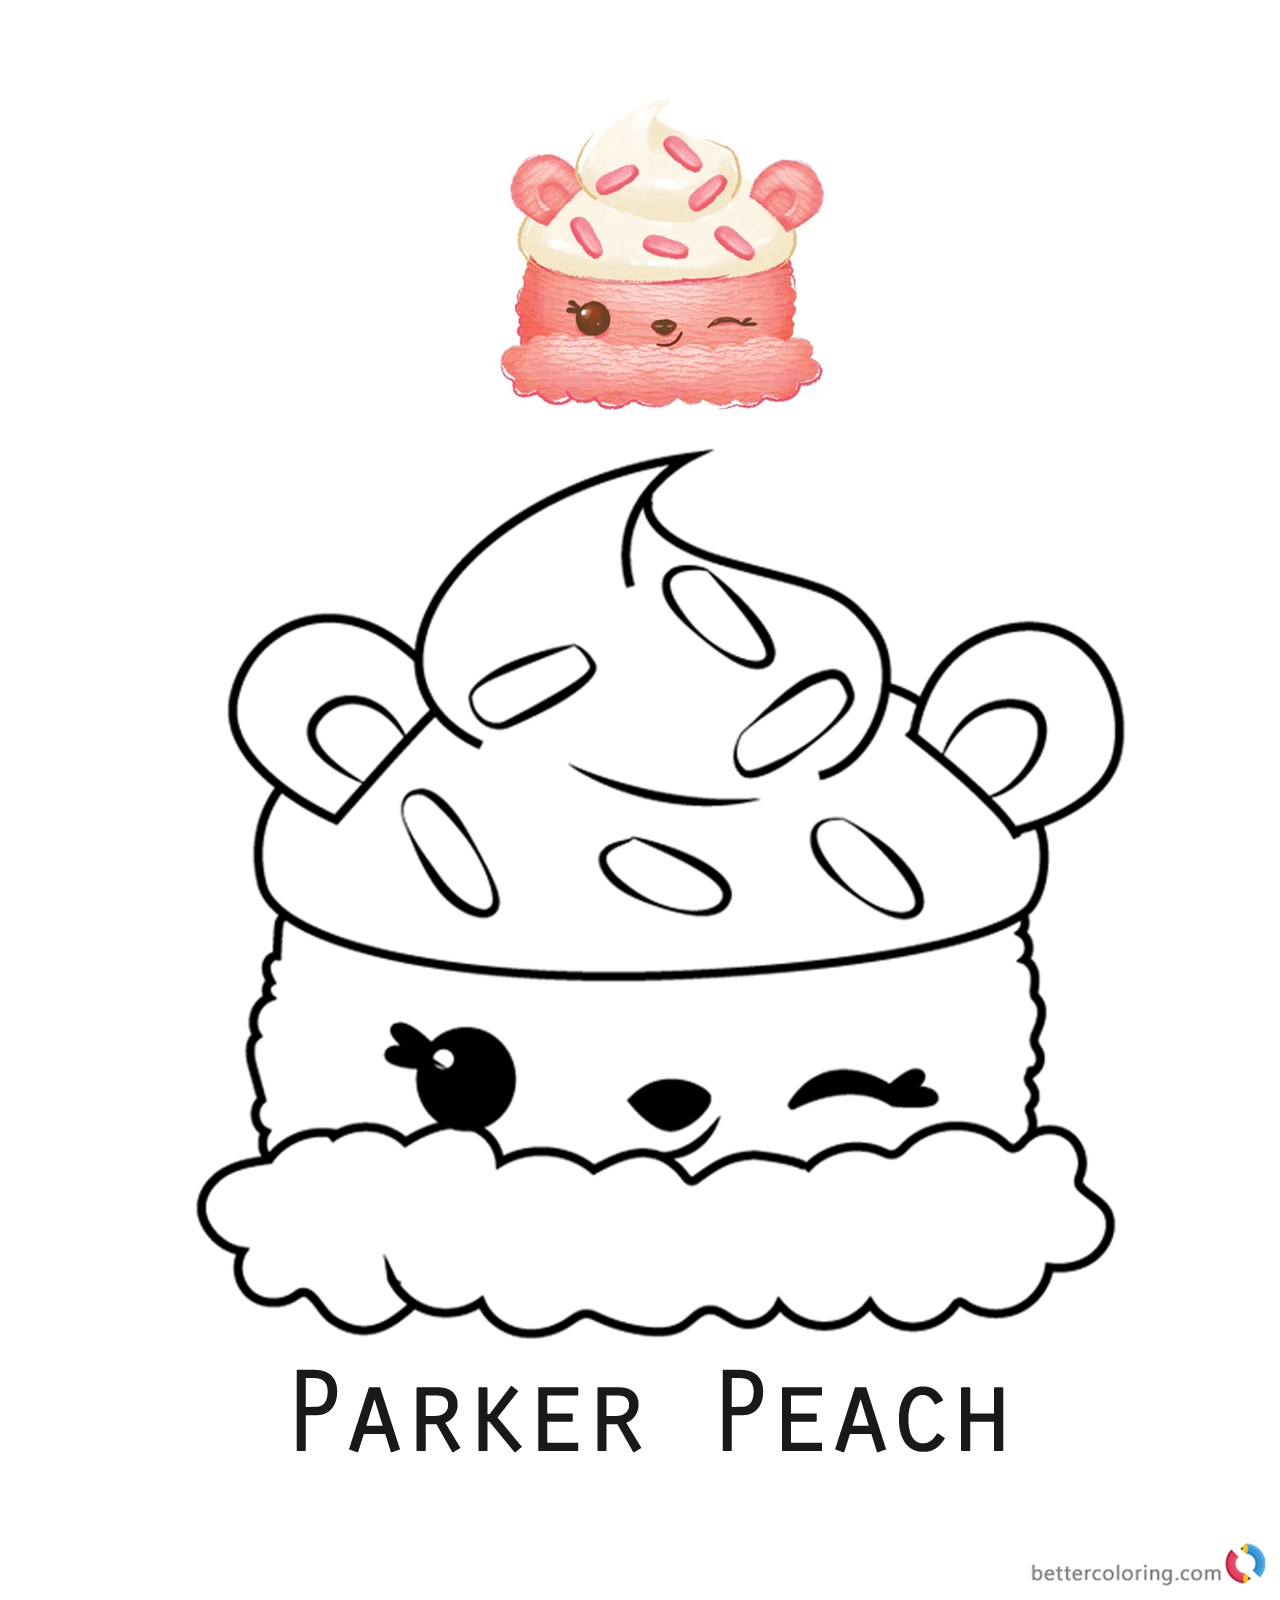 Parker Peach from Num Noms coloring pages printable